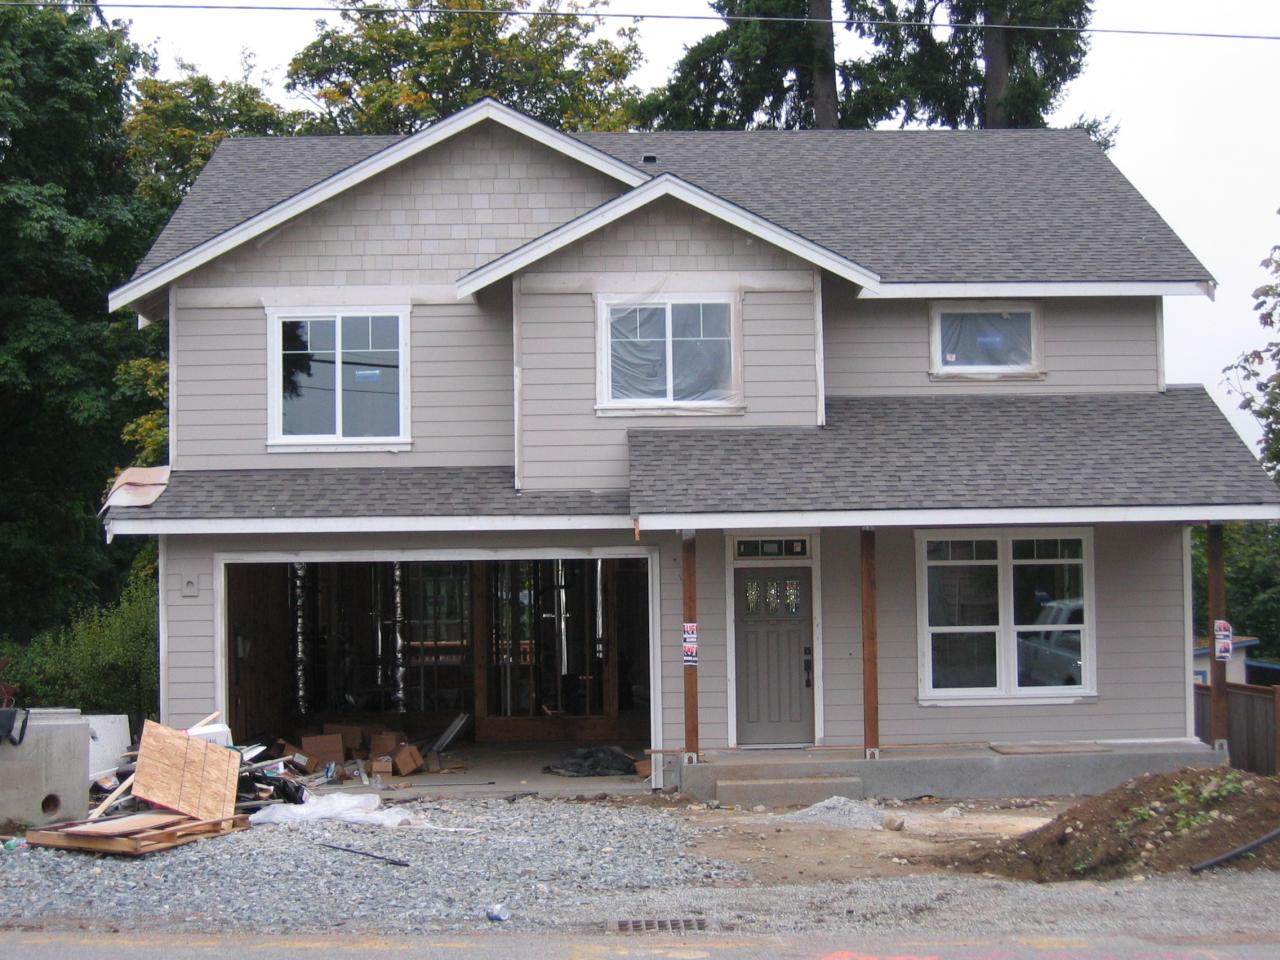 Eggers home construction remodeling llc new home for Home building contractors